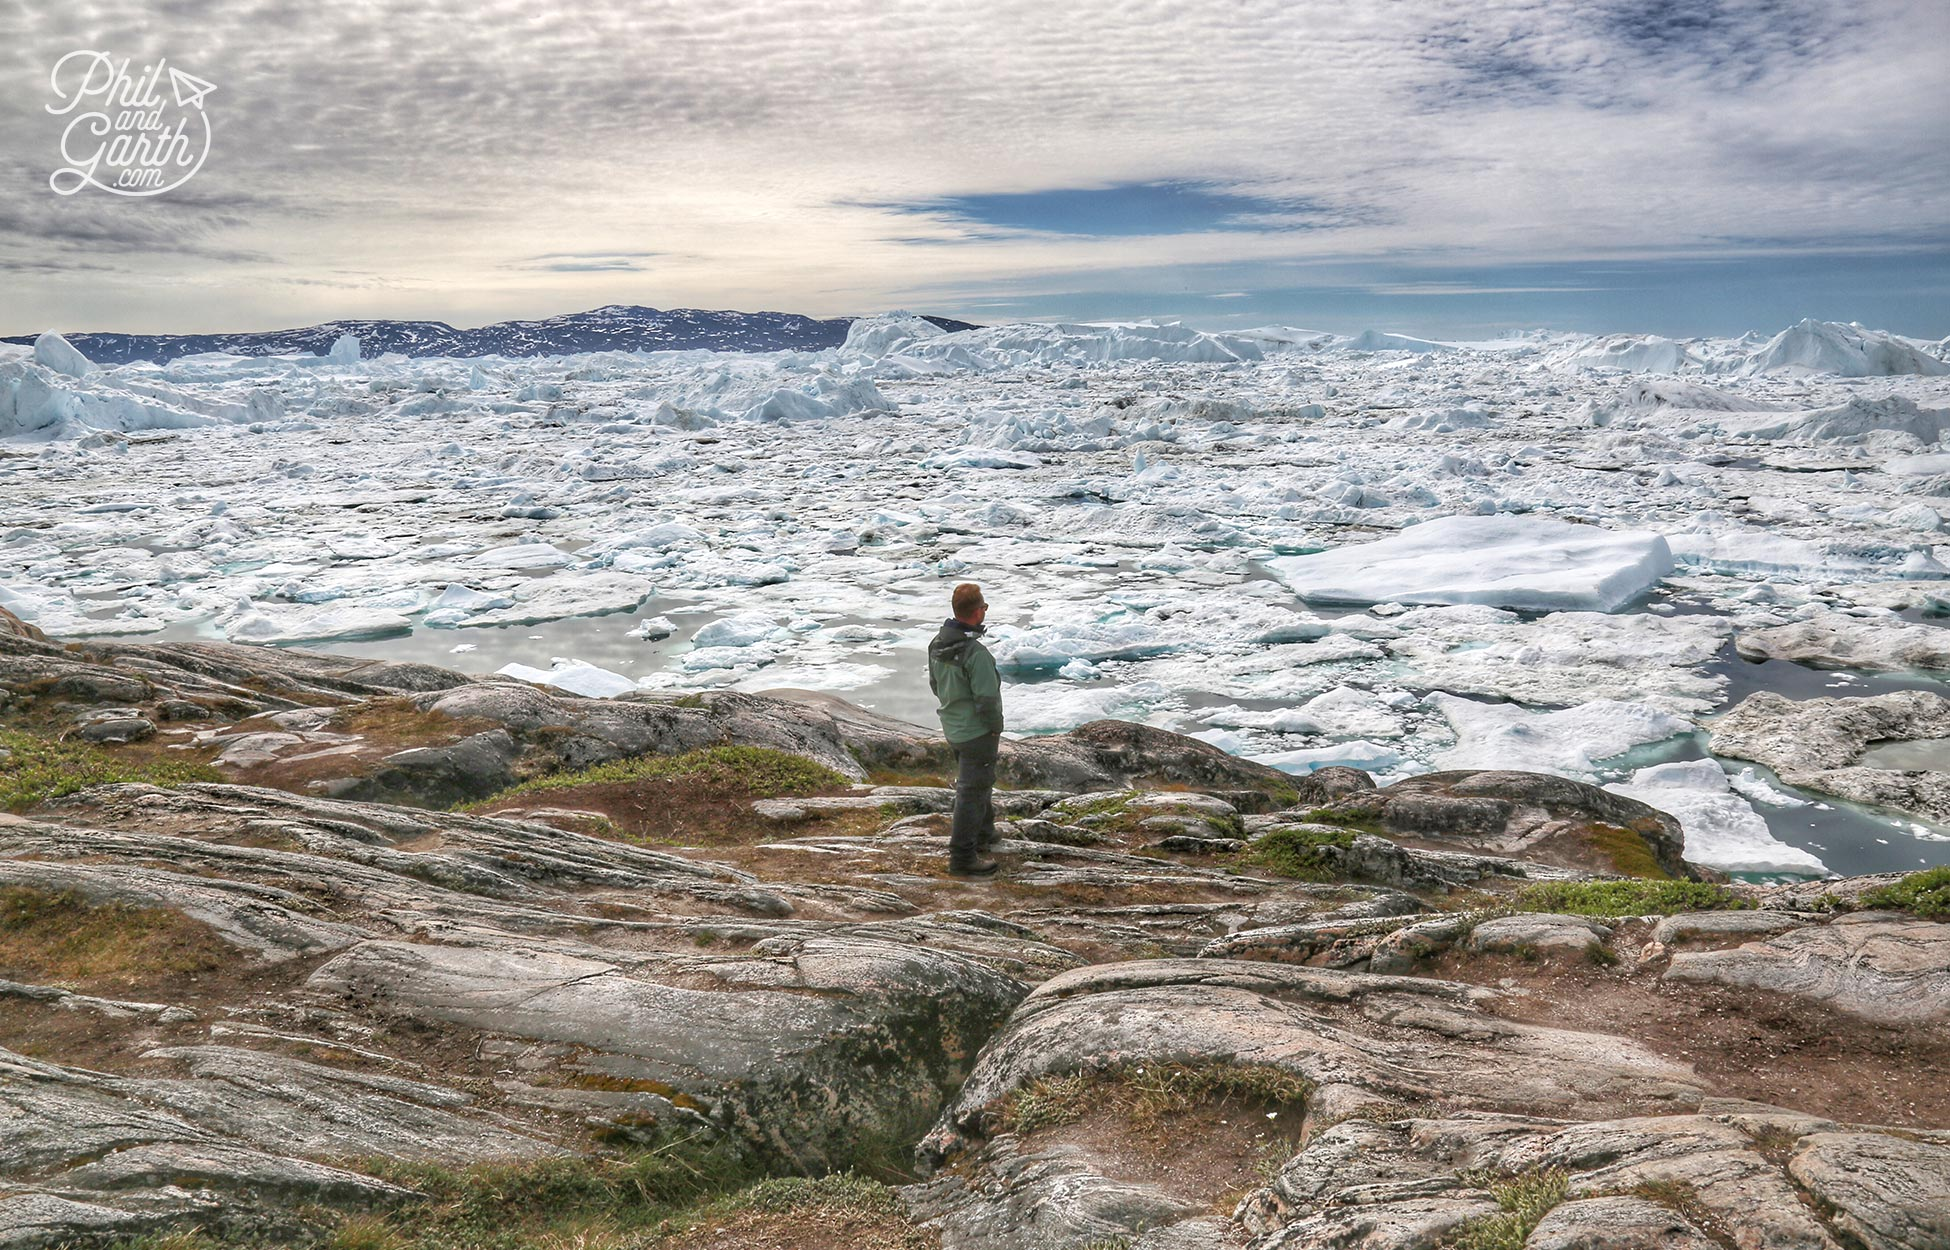 Garth on the edge of Ilulissat Icefjord at Sermermiut, we sat here for an hour or two